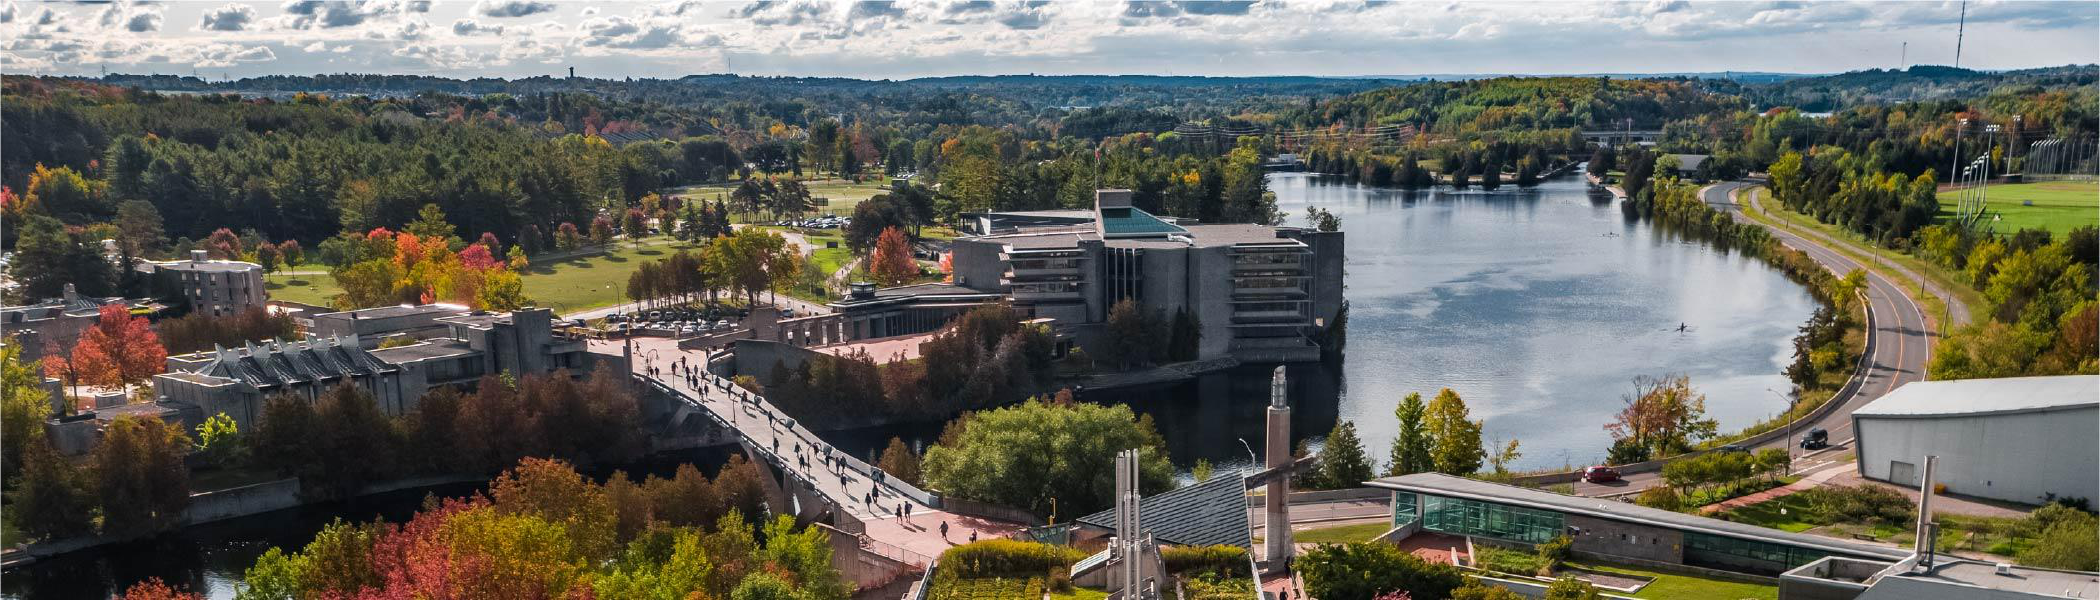 Aerial photograph of Trent University. Faryon bridge in foreground, Otonabee river in left third, and Bata 图书馆 Centre.